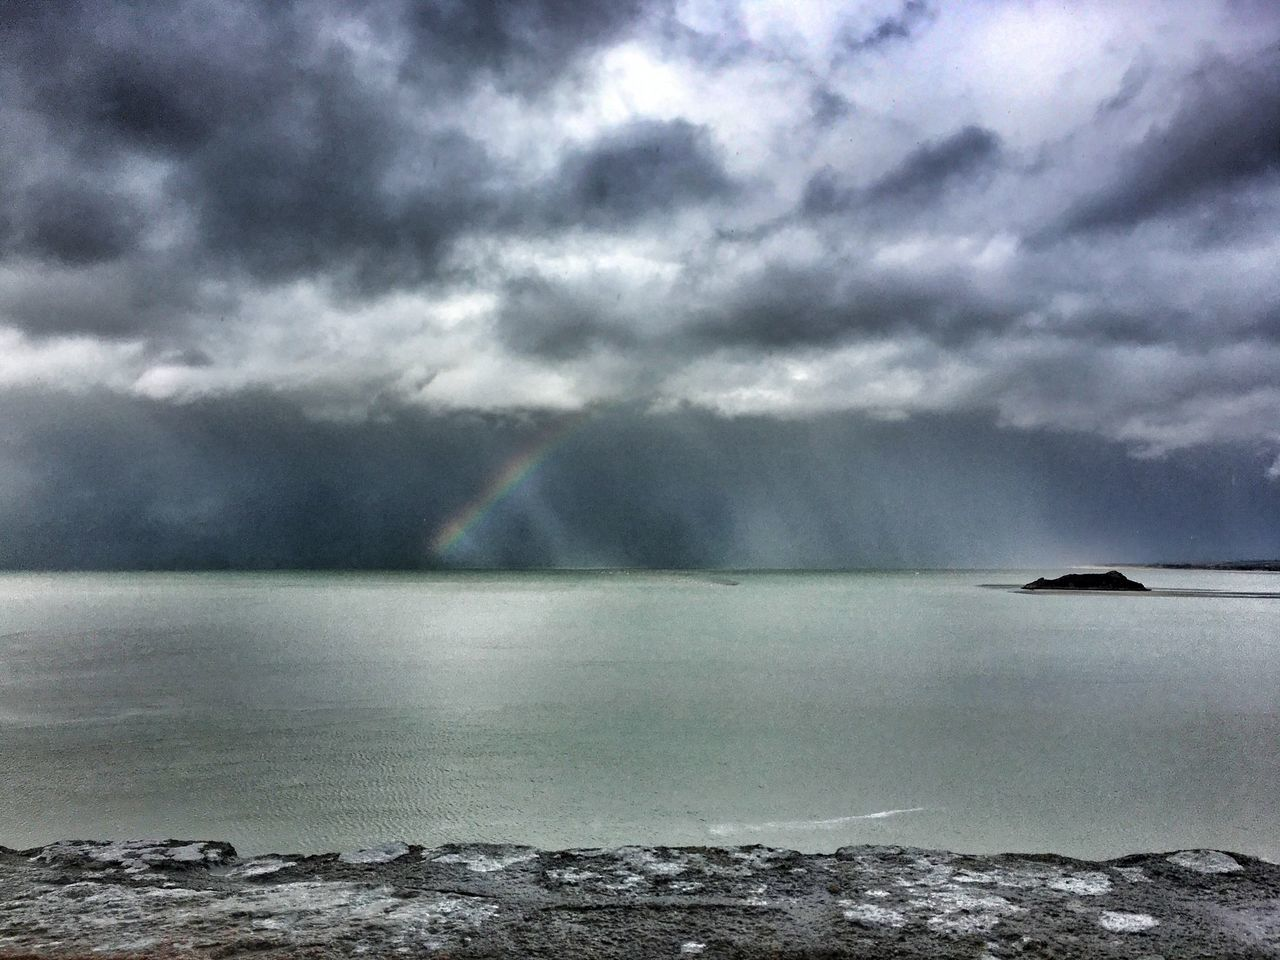 Weather Sea Nature Sky Cloud - Sky Beauty In Nature Overcast Scenics Water Tranquil Scene No People Storm Cloud Tranquility Outdoors Horizon Over Water Day Beach Rainbow Rainy Days Beauty In Nature Mont Saint-Michel Bay Bretagne Bretagnetourisme